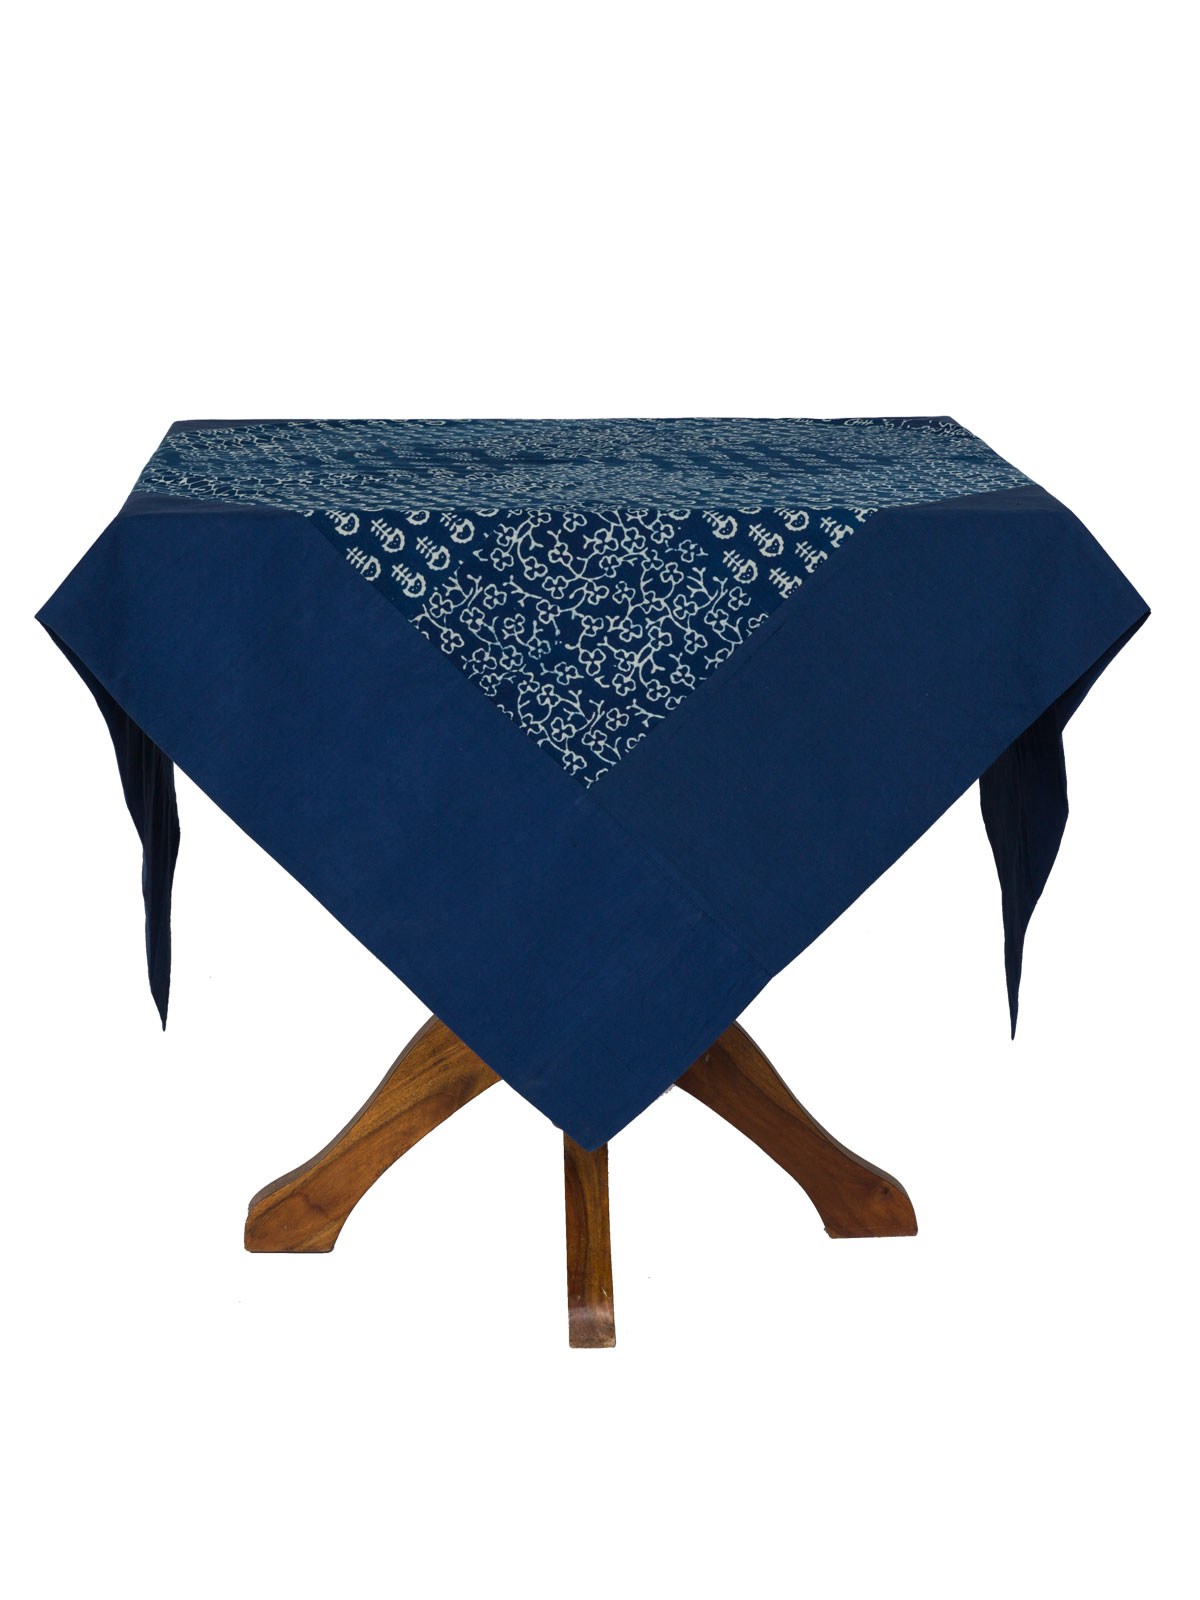 Kitchen Table Vt Indigo tablecloth attic sale linens kitchen attic beautiful 2018 cornell online llc all rights reserved 131 battery street burlington vt 05401 customer service 888 33 april workwithnaturefo